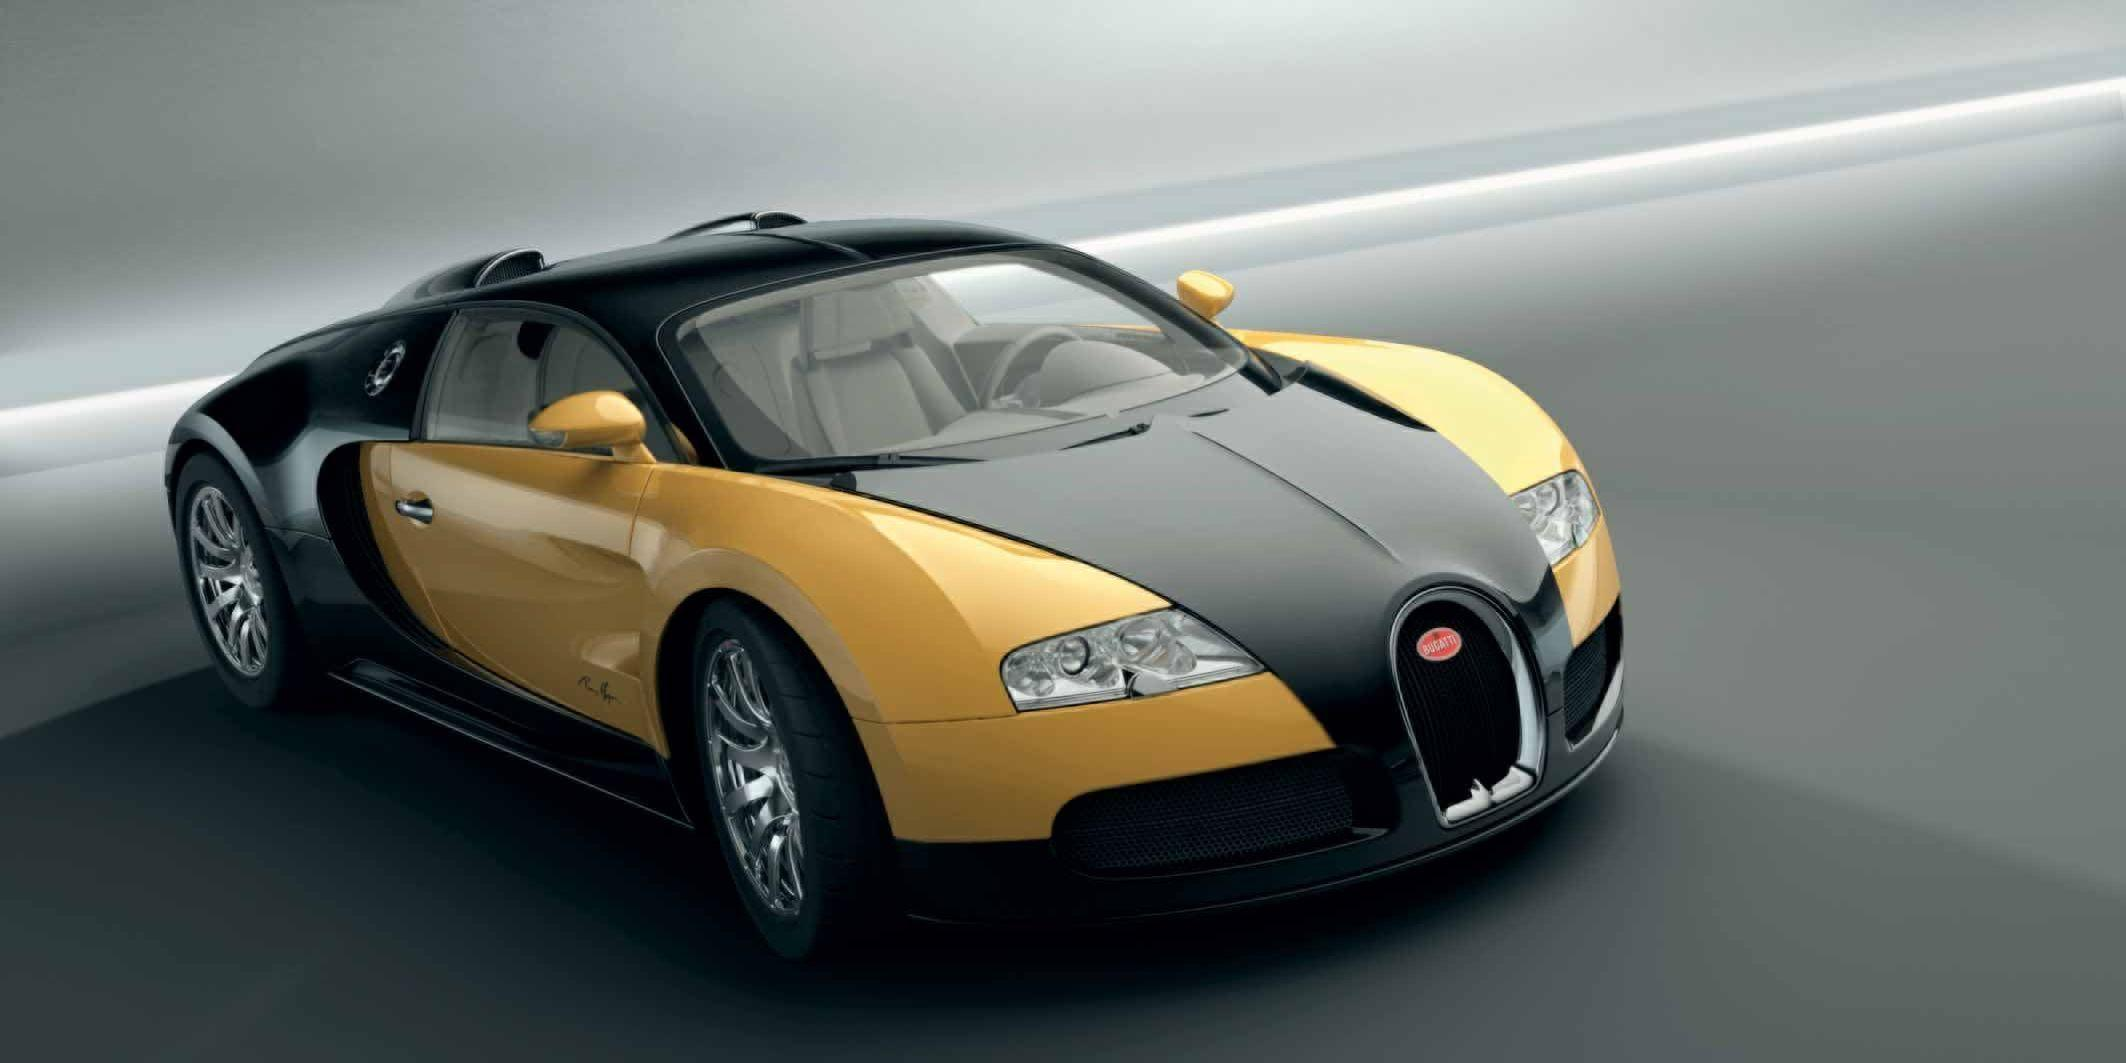 Bugatti Veyron HD Wallpapers 2126x1063